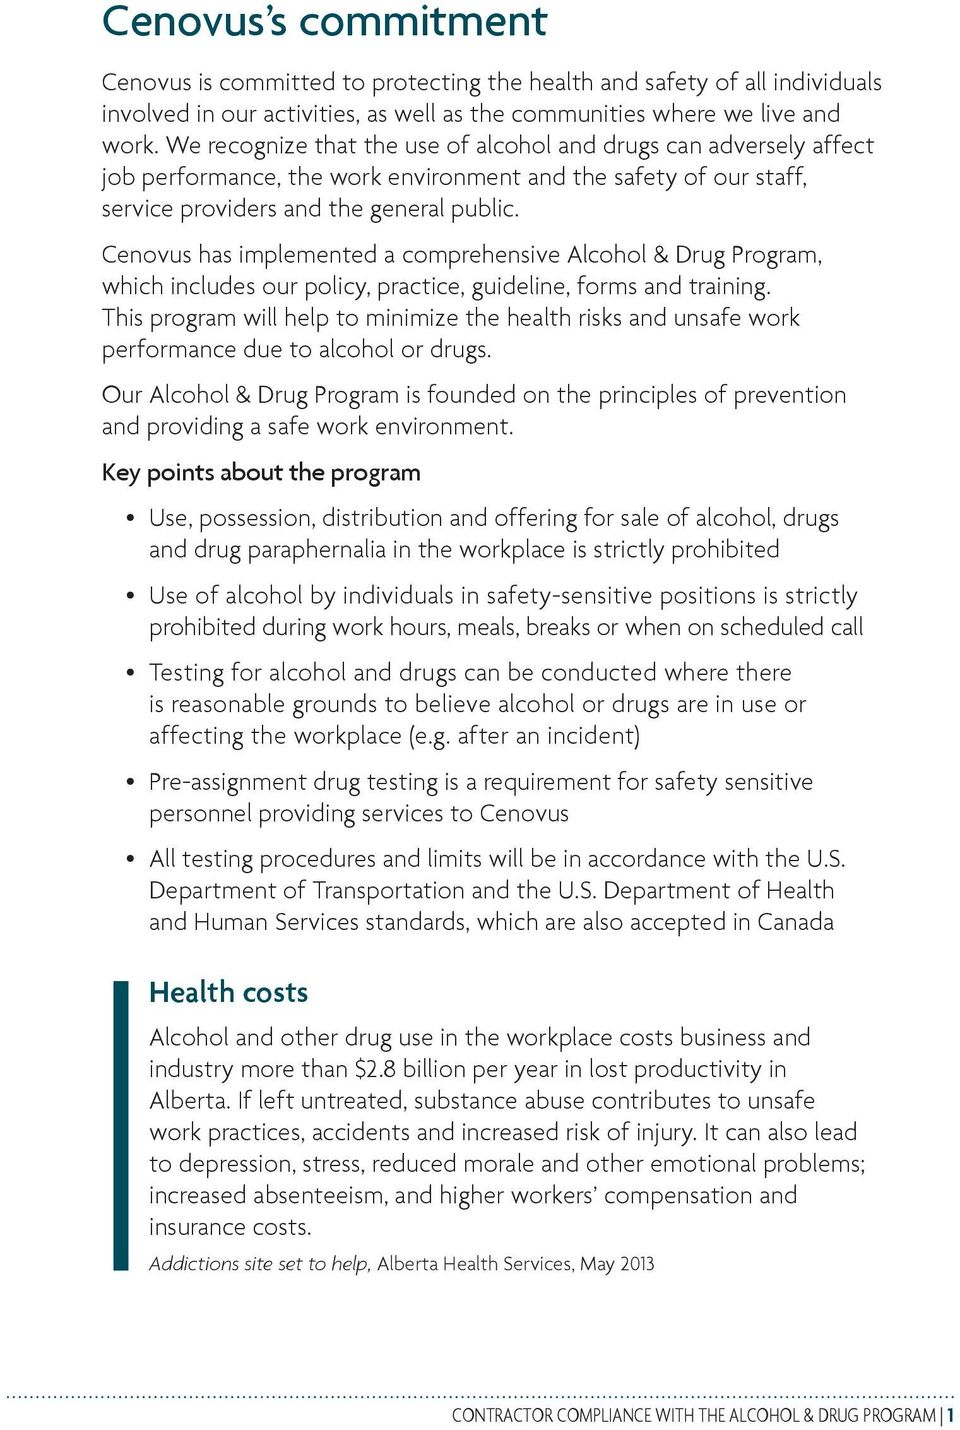 Cenovus has implemented a comprehensive Alcohol & Drug Program, which includes our policy, practice, guideline, forms and training.